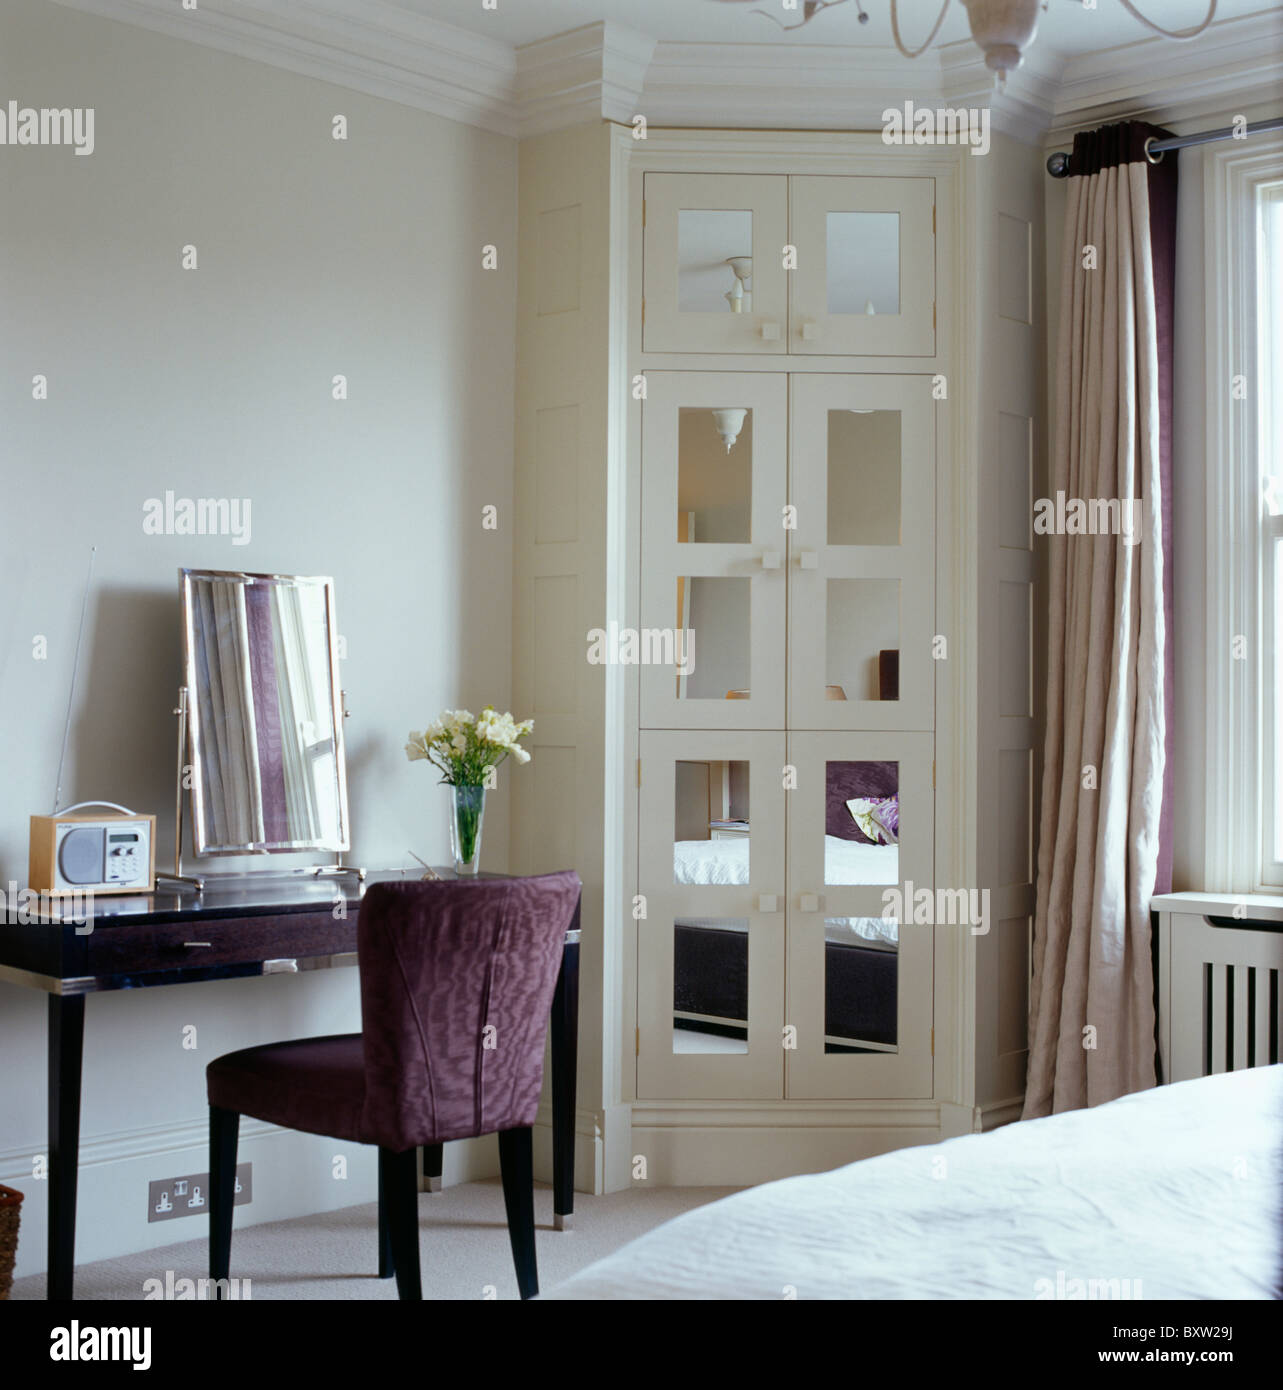 Mirrored Glass Panels In Fitted Corner Wardrobe In Bedroom With Purple  Velvet Chair At Simple Dressing Table